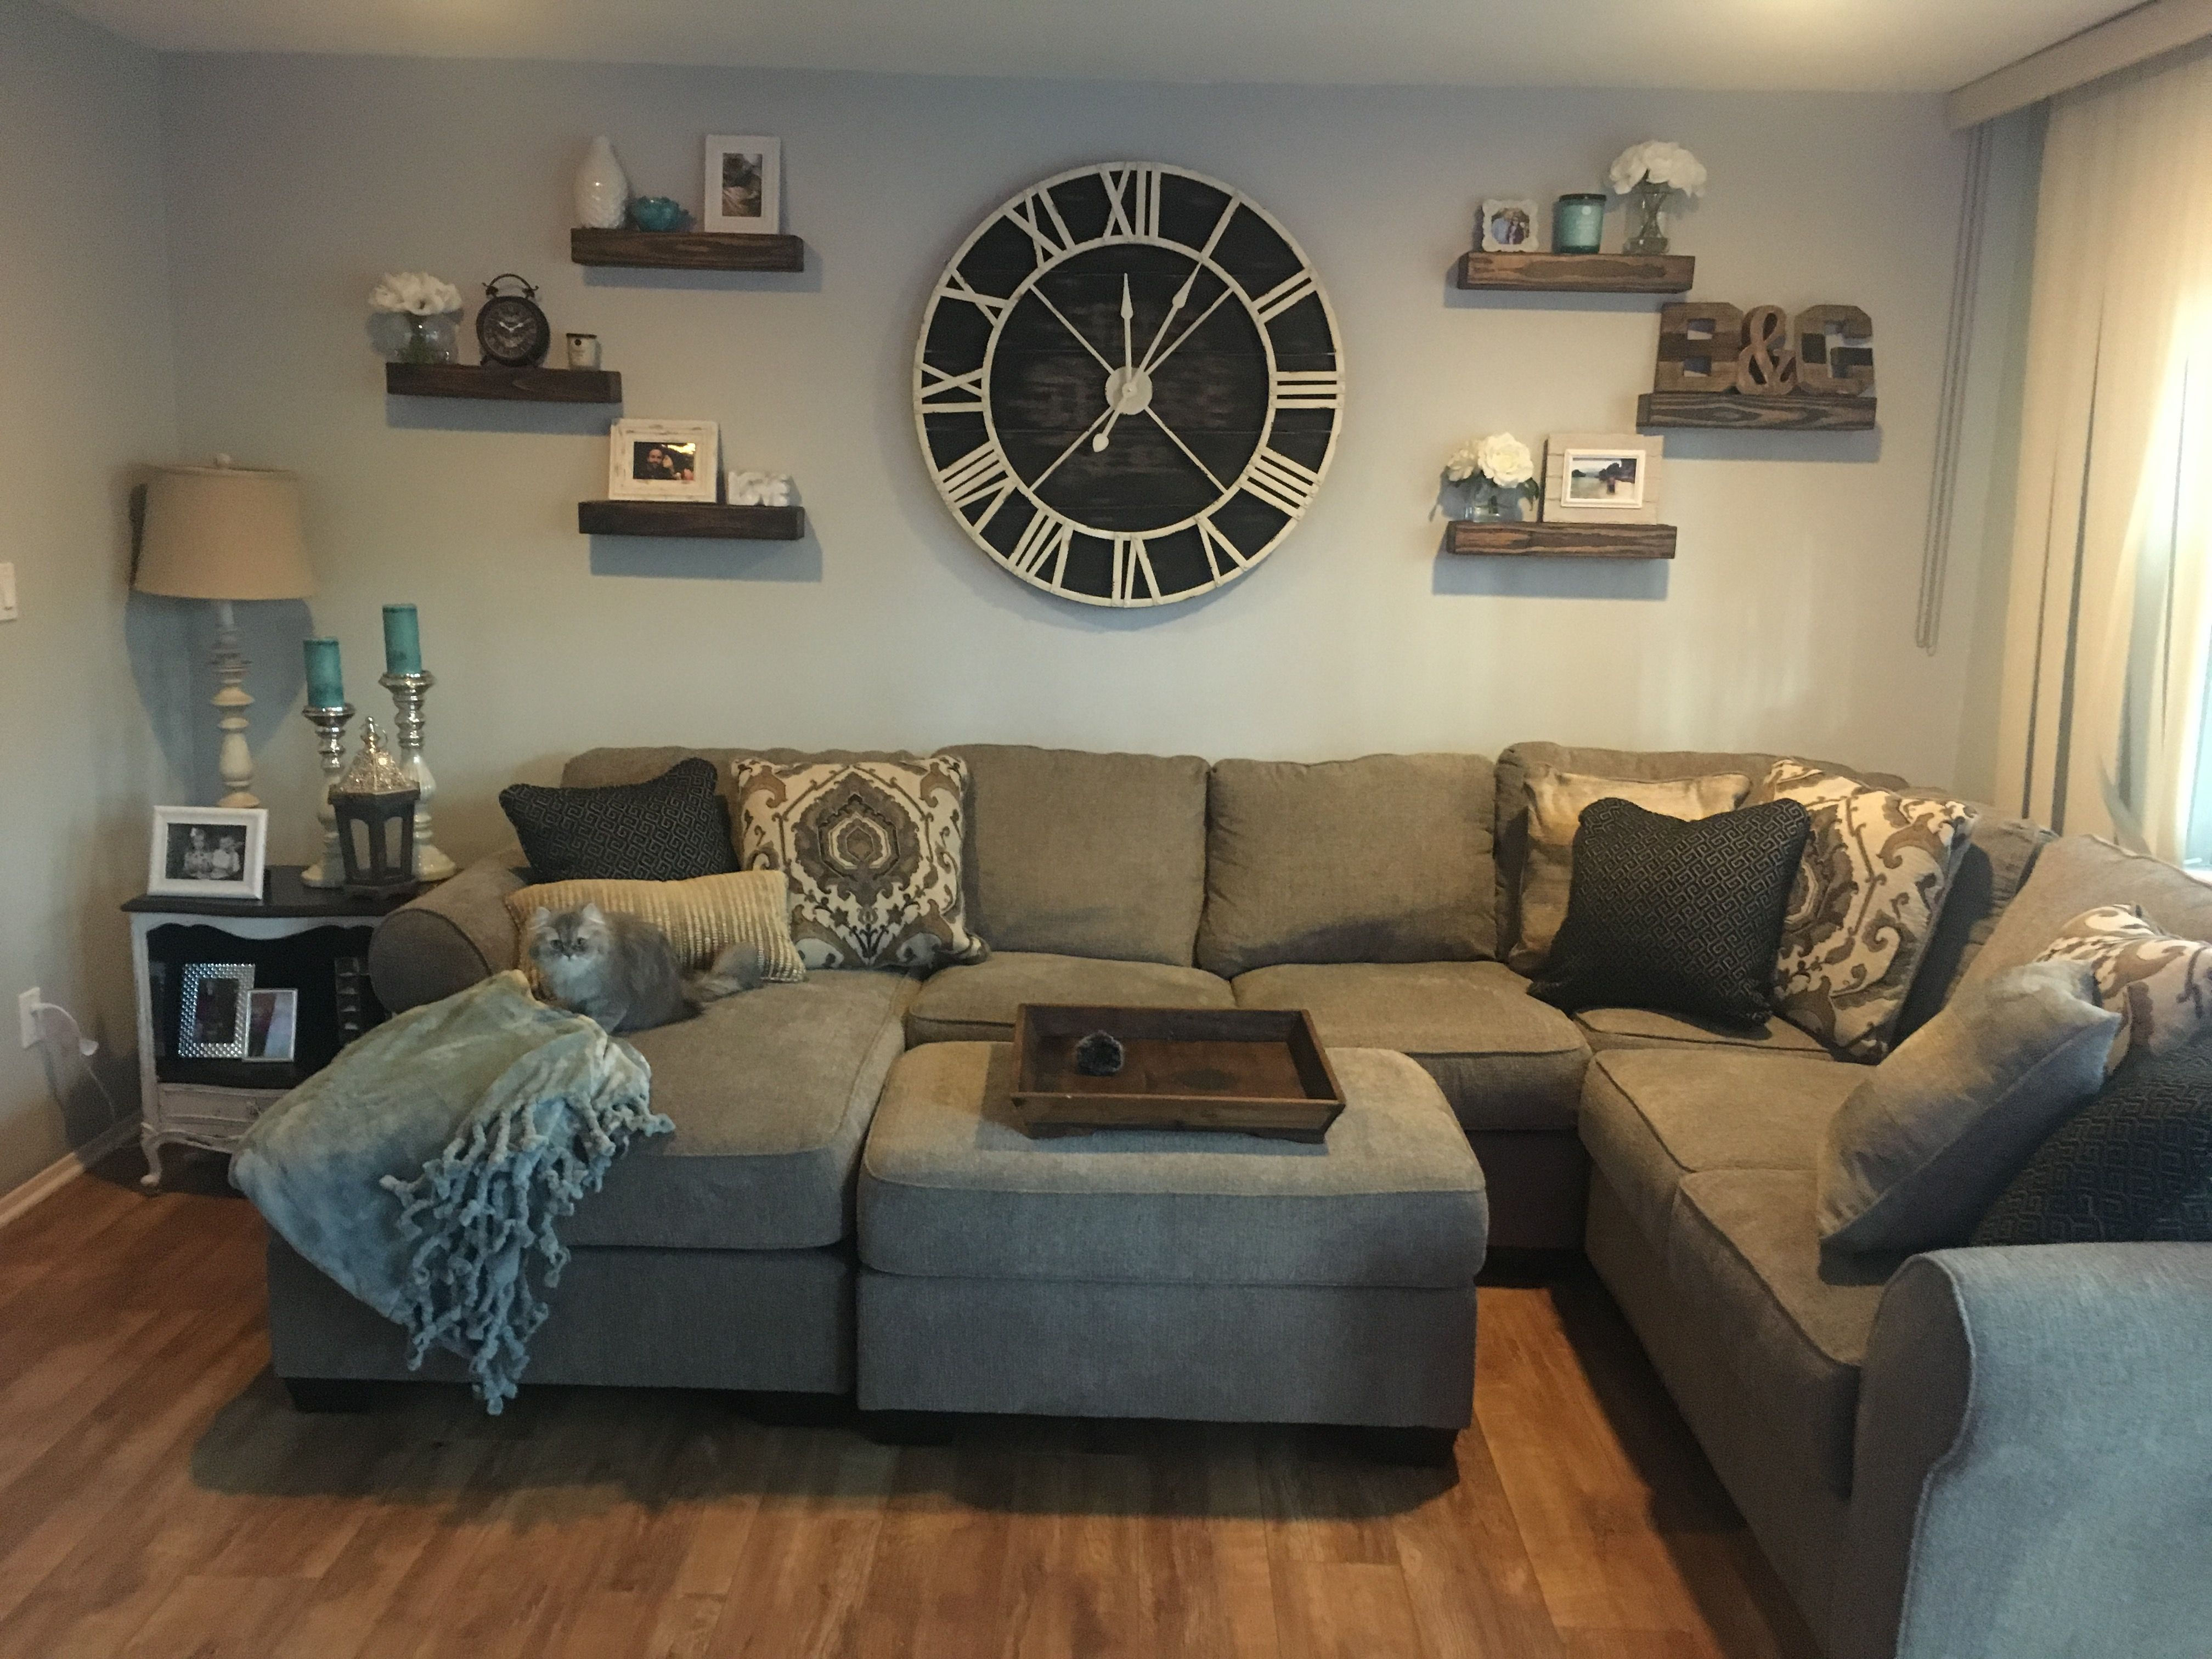 Living Room Clocks Next Diy Small Design Oversized Wall Clock With Floating Shelves Indiana Home